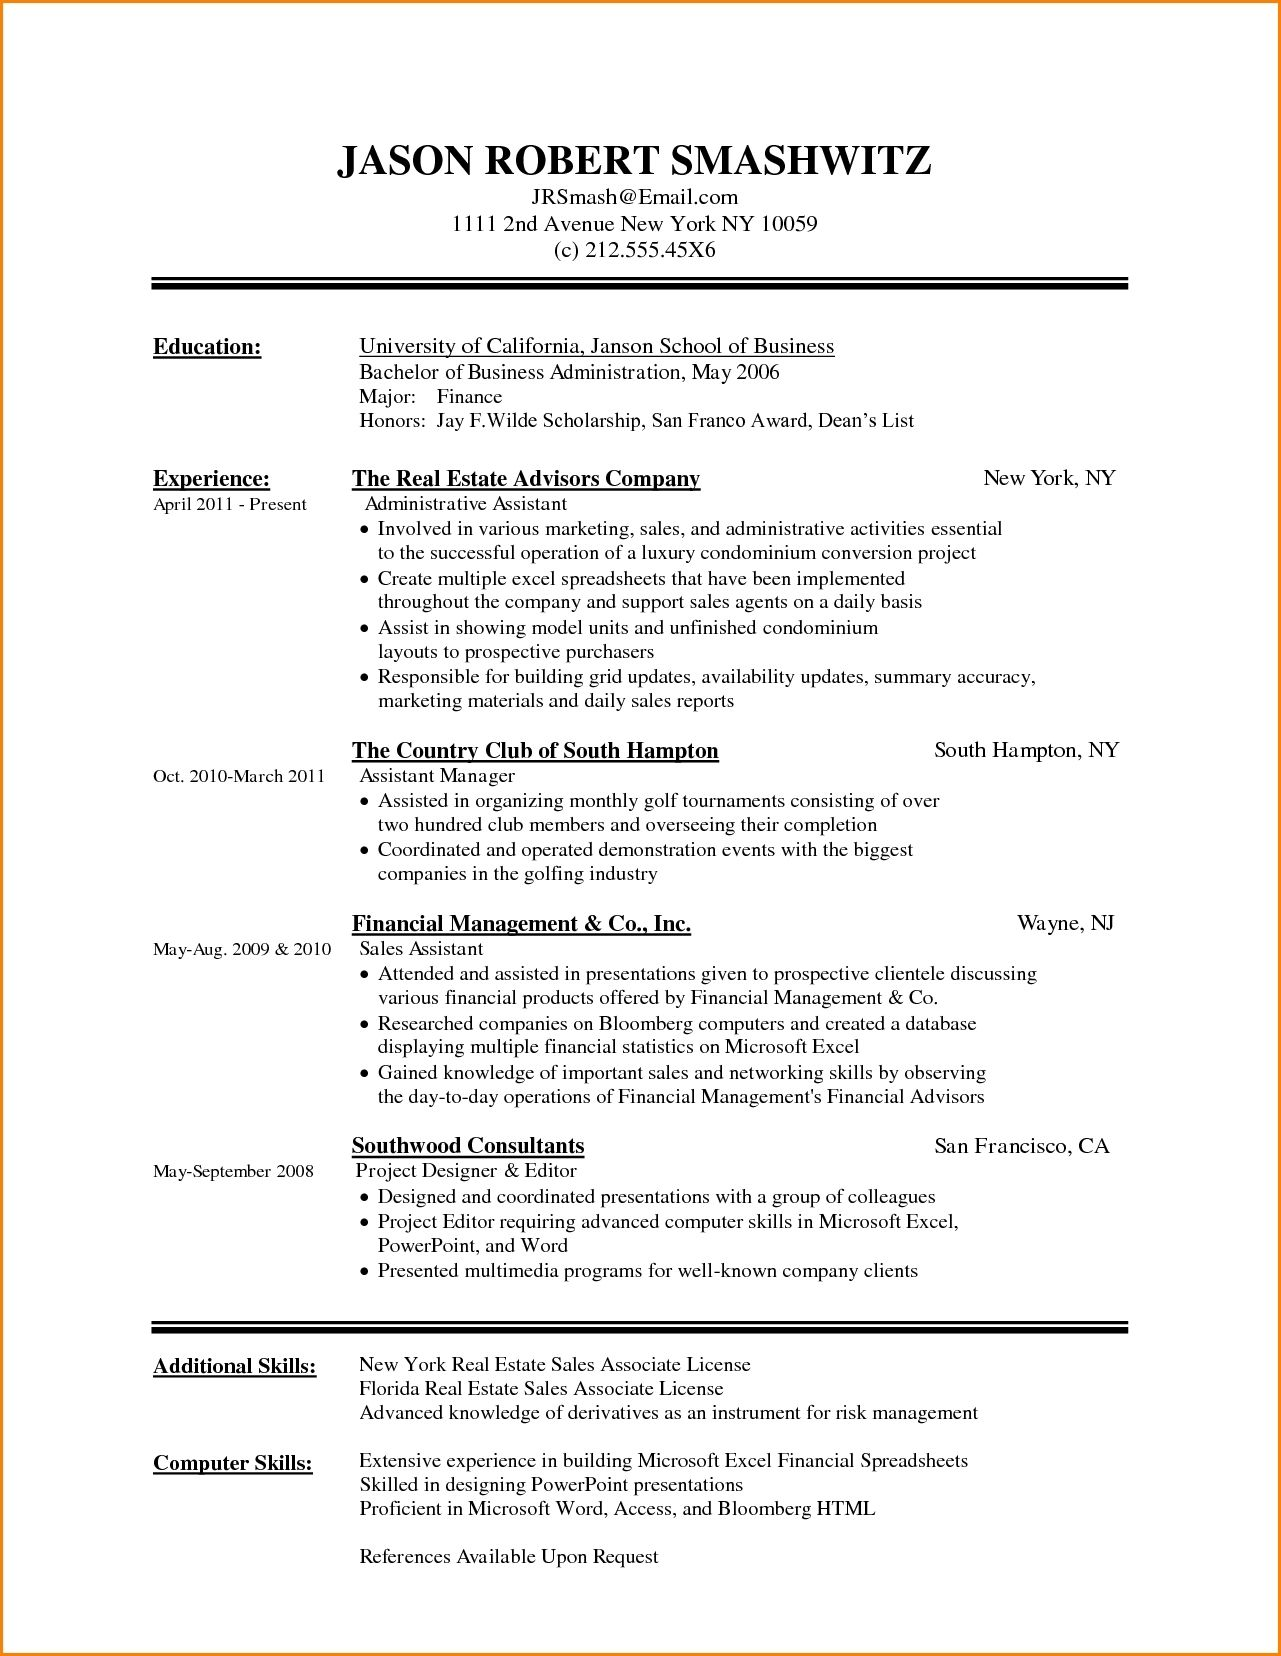 Resume Format With Skills Resumeformat Microsoft Word Resume Template Resume Template Word Resume Template Free